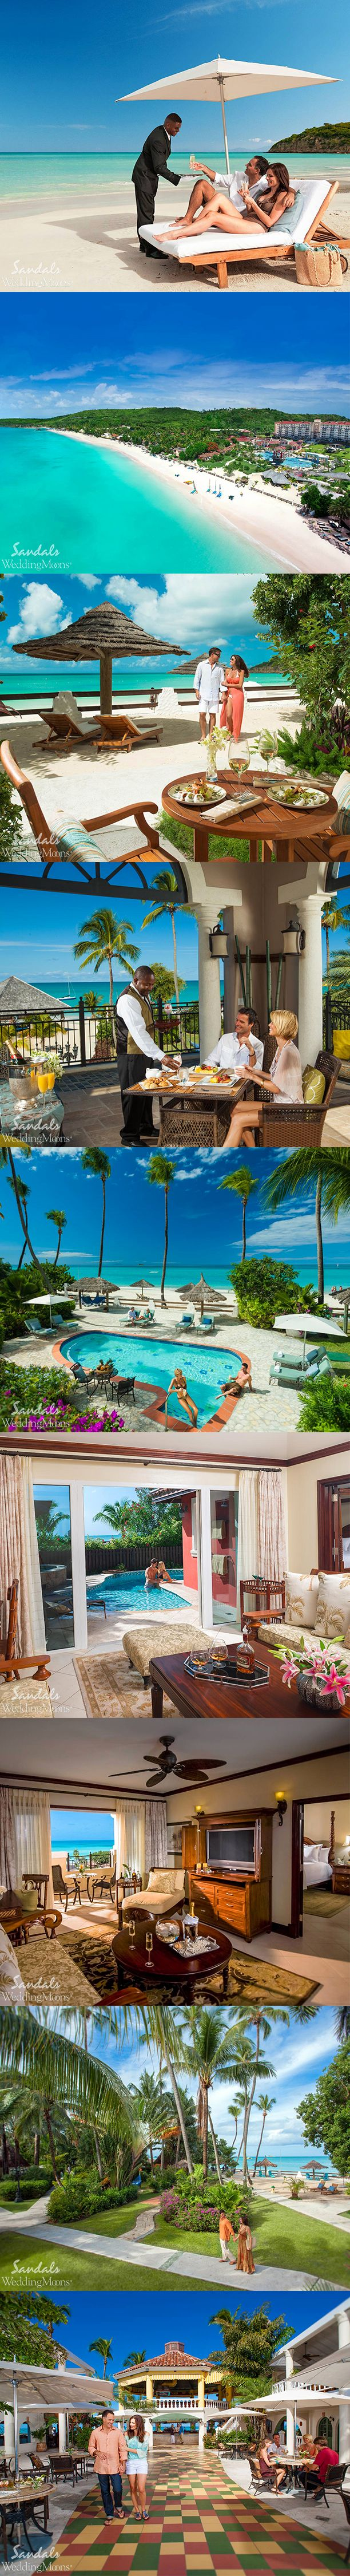 SANDALS WEDDING INSIDERS HONEYMOON IN ANTIGUA For A Secluded Yet Sophisticated Experience Honeymoon In